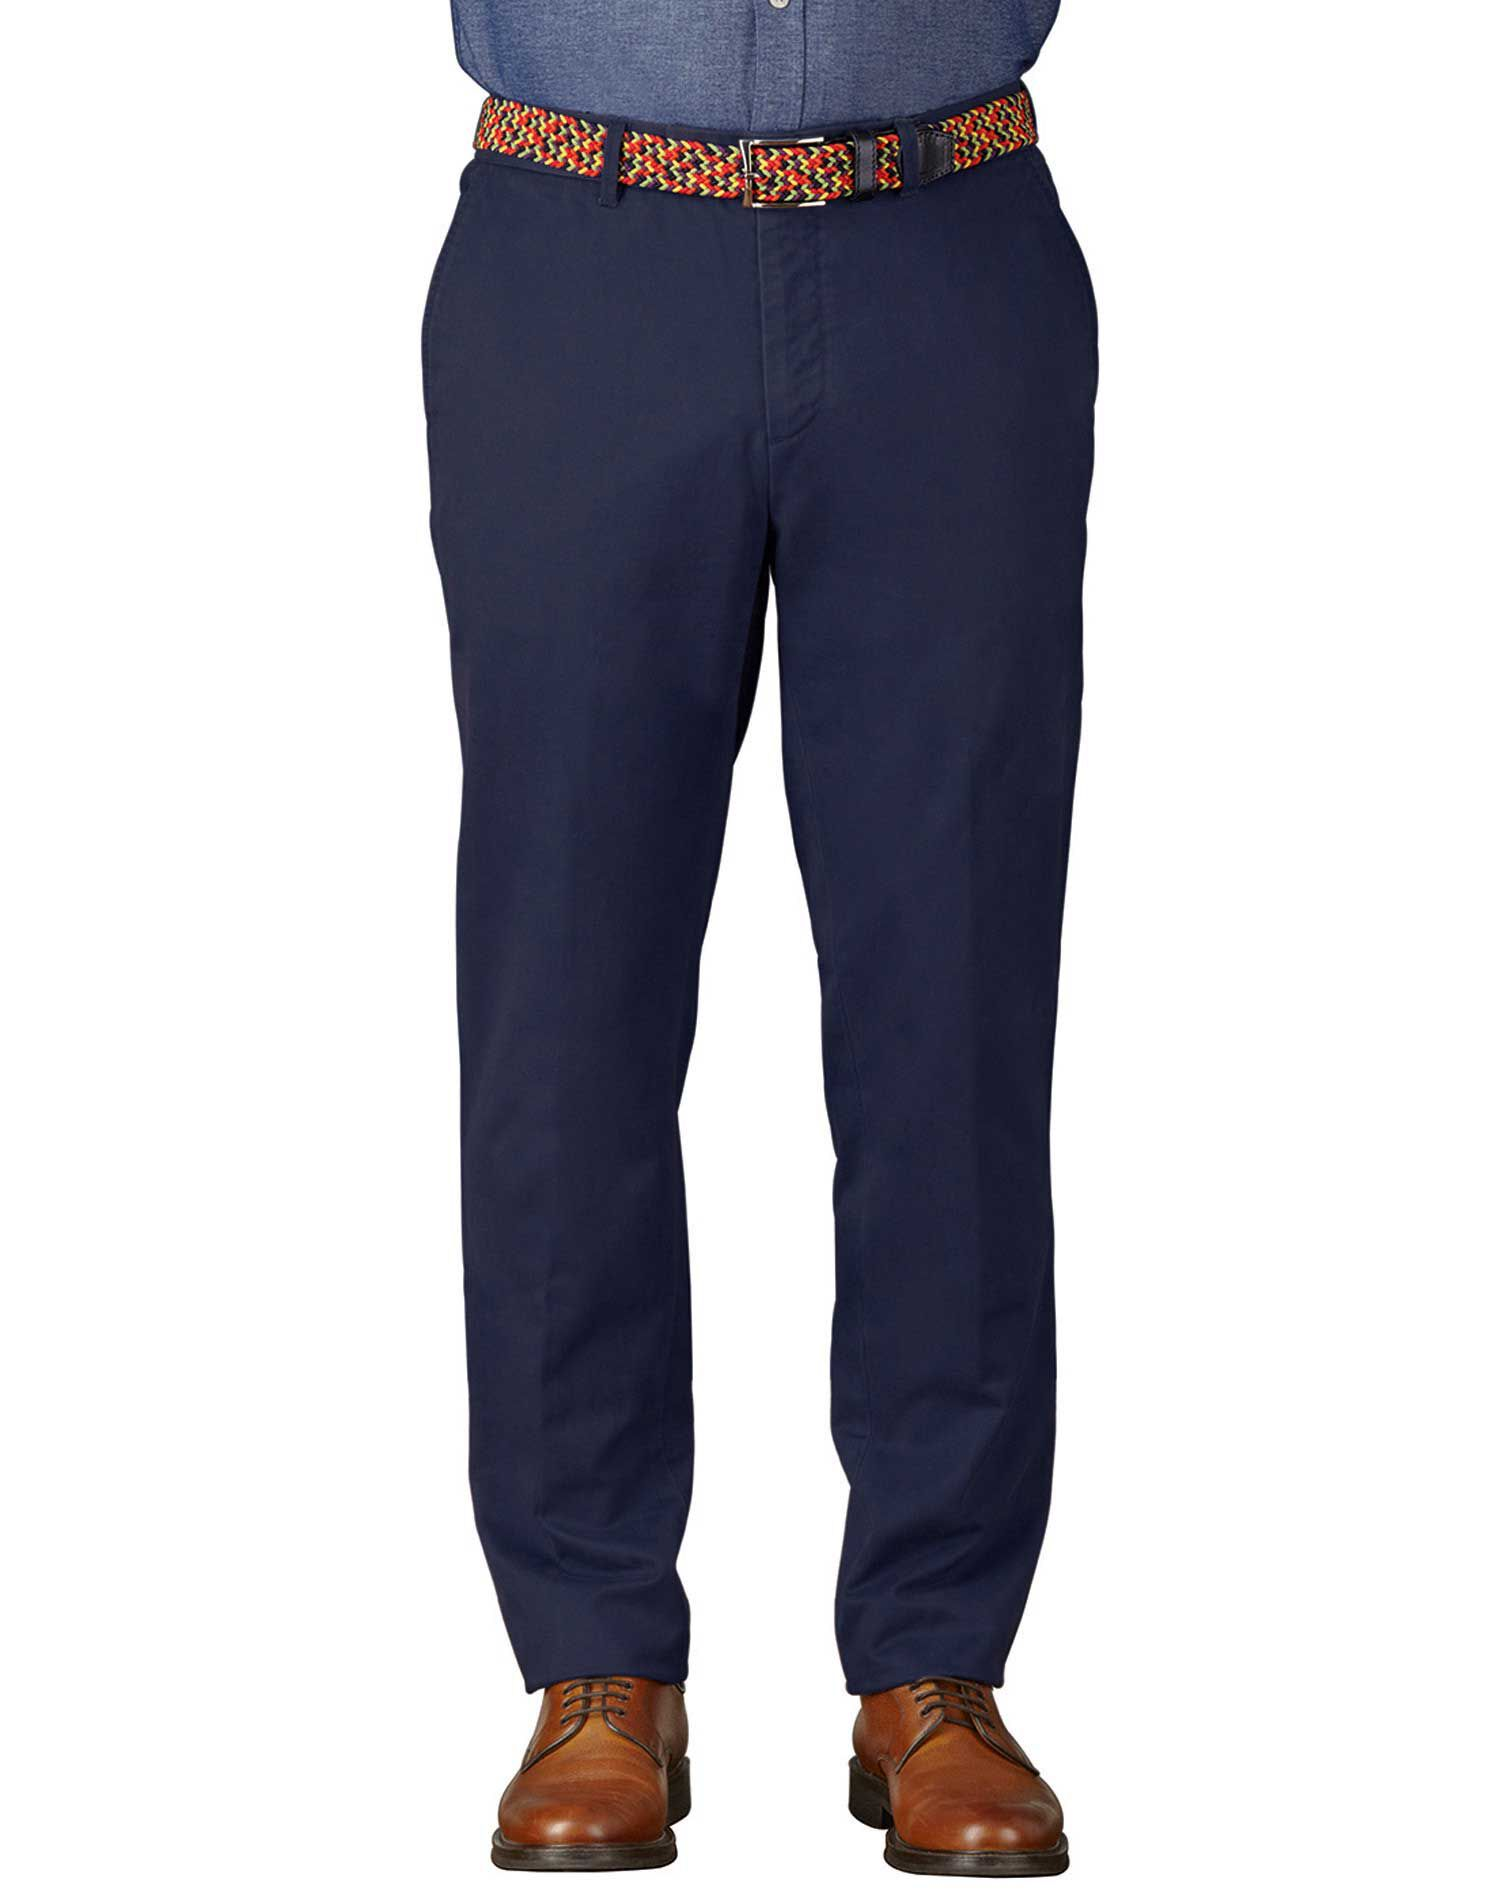 Marine Blue Extra Slim Fit Flat Front Cotton Chino Trousers Size W30 L30 by Charles Tyrwhitt